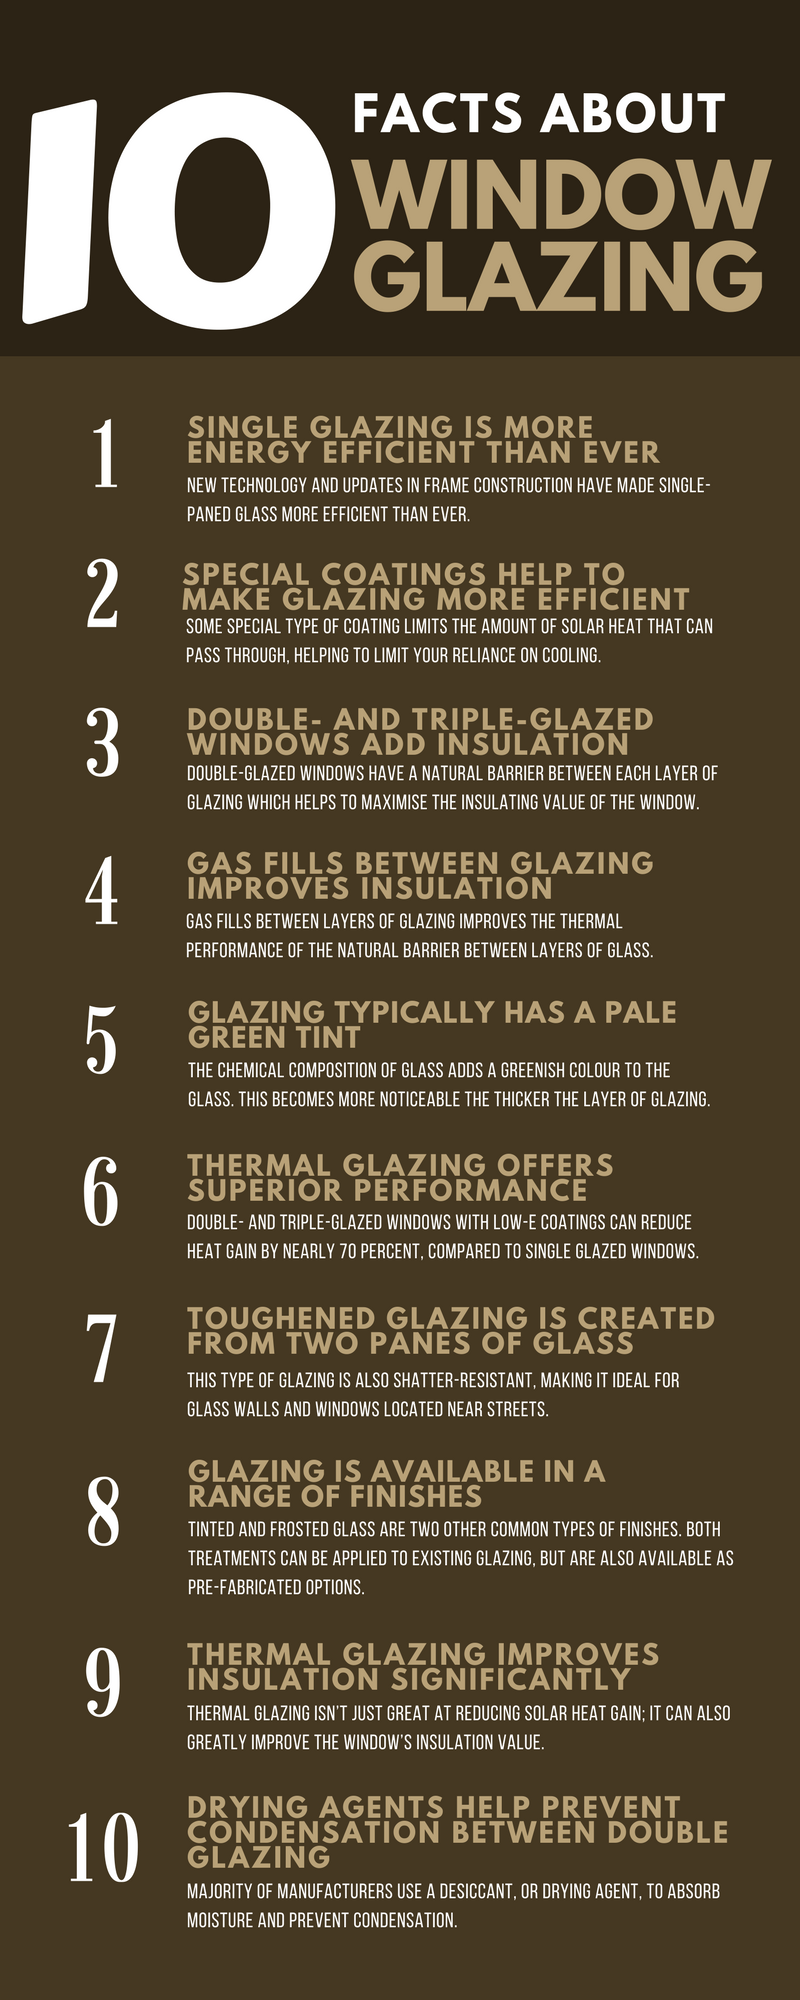 10 Facts About Window Glazing